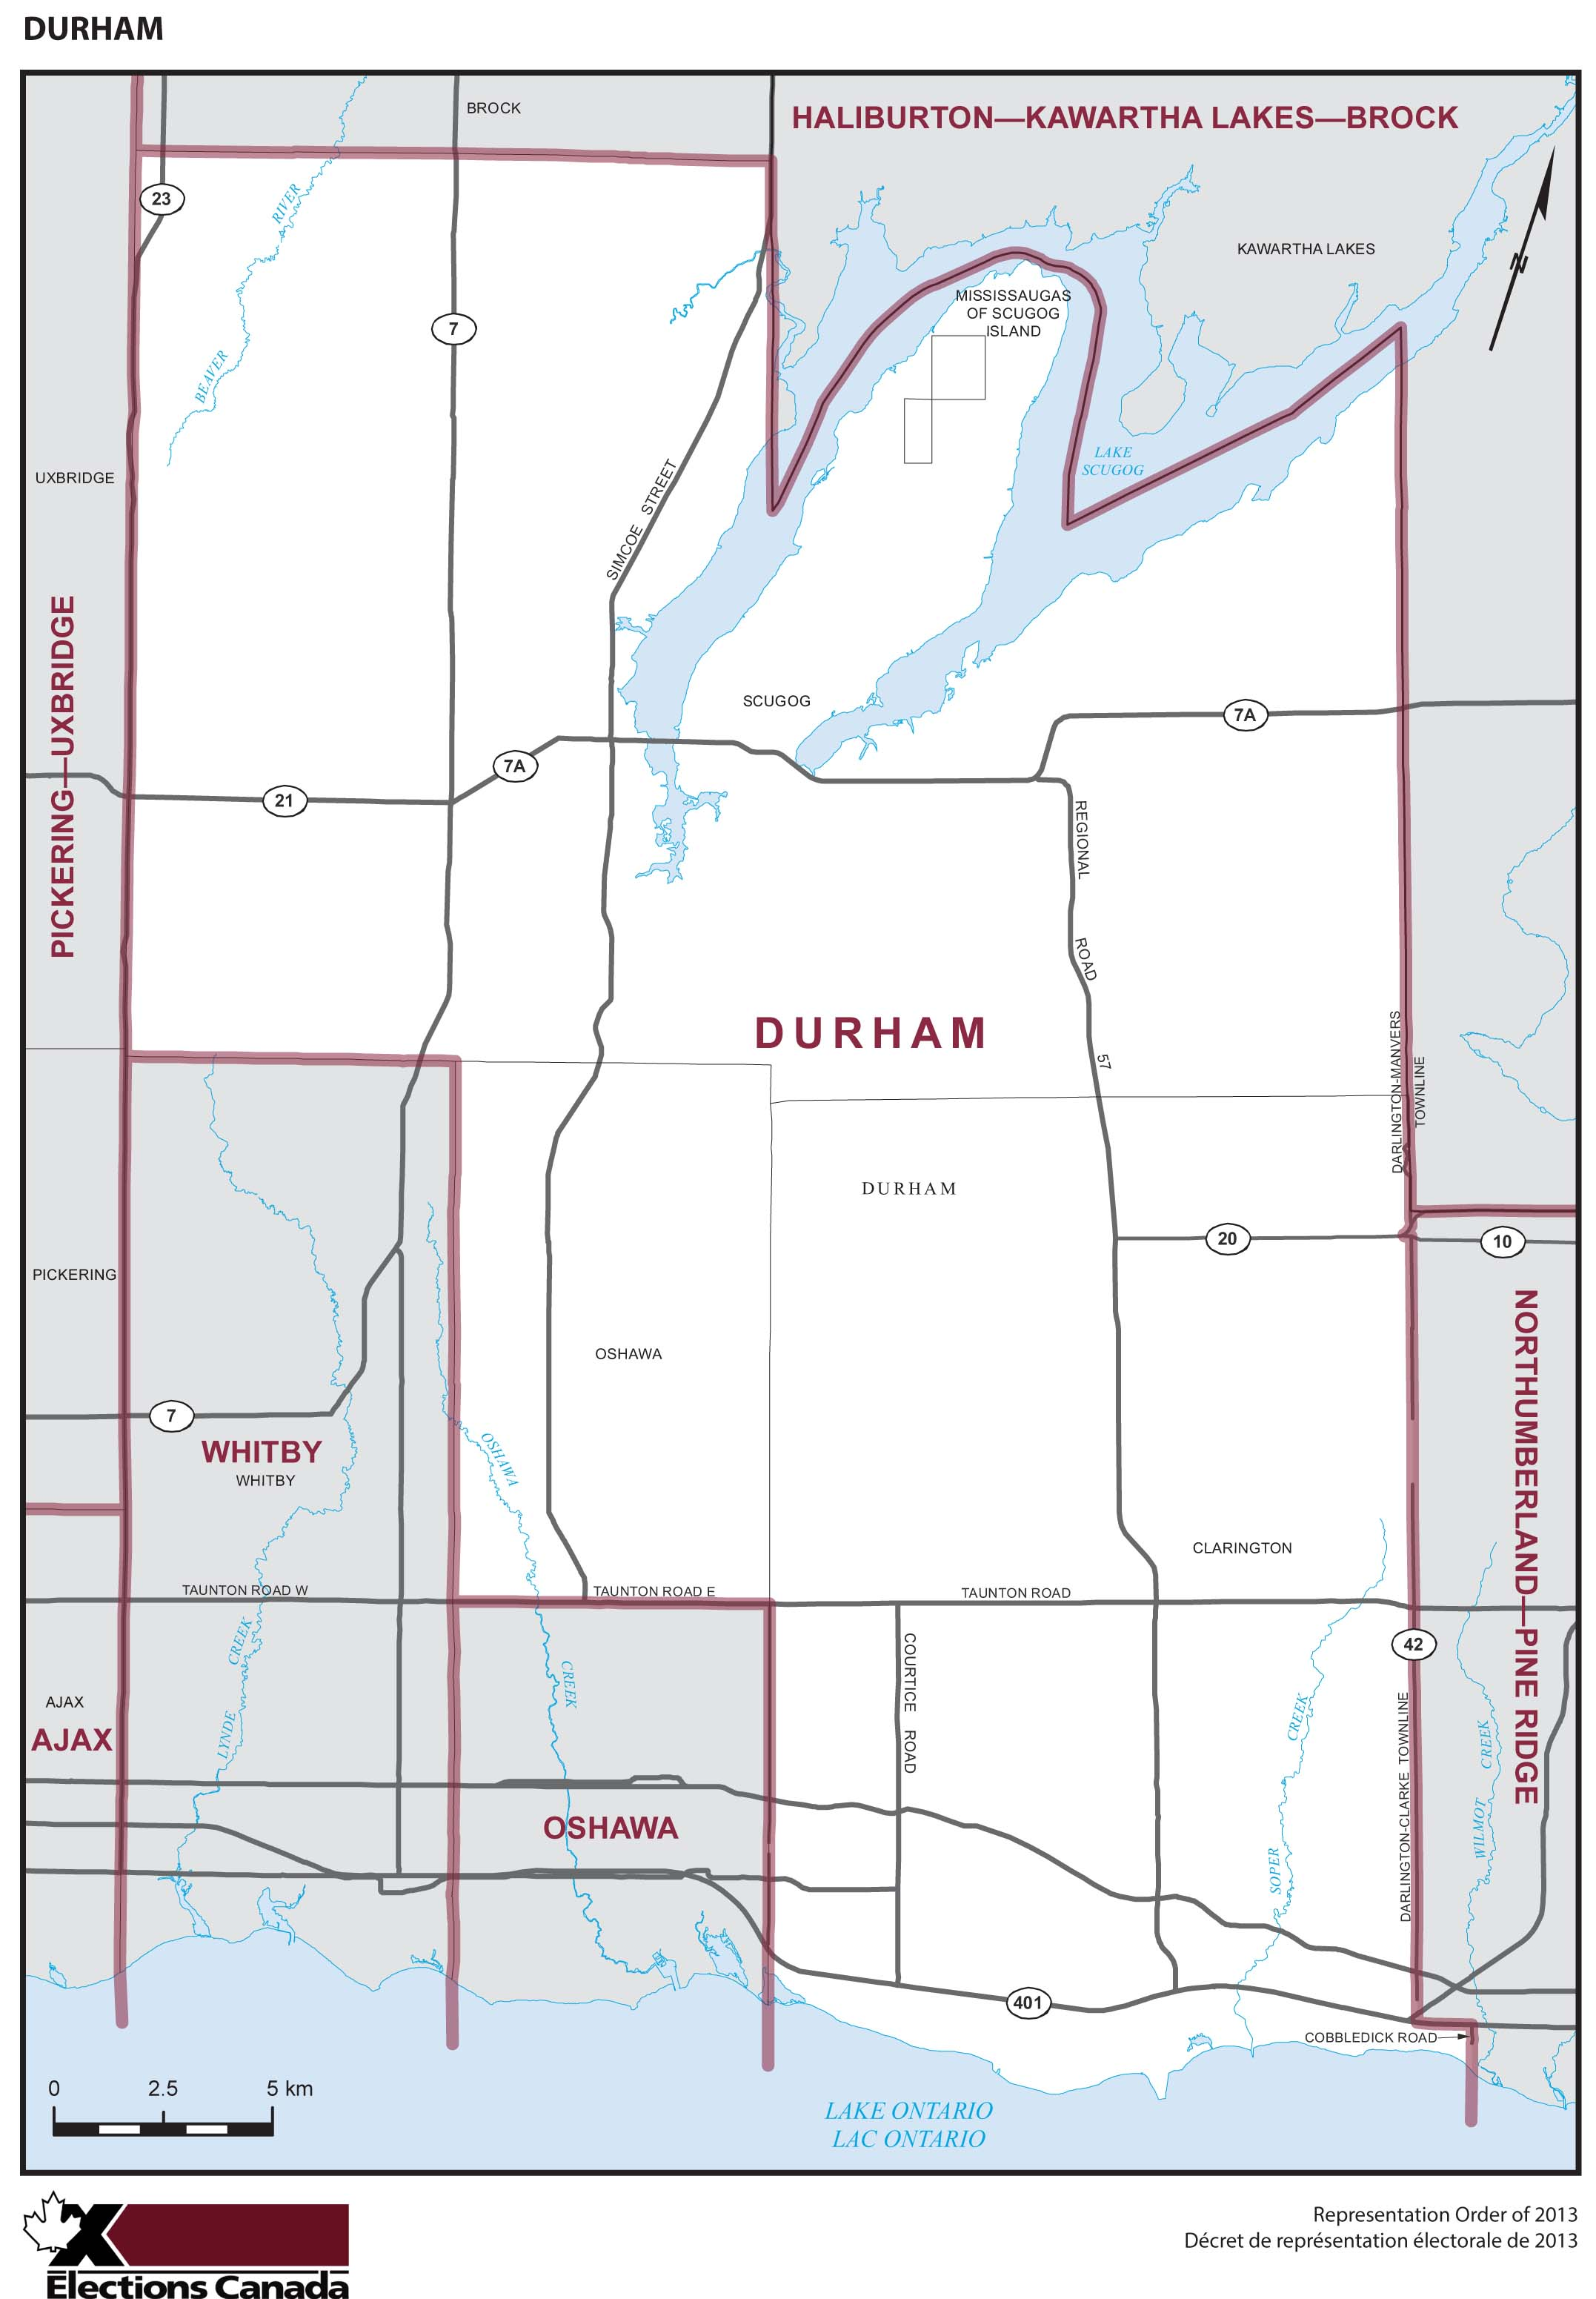 Map: Durham, Federal electoral district, 2013 Representation Order (in white), Ontario